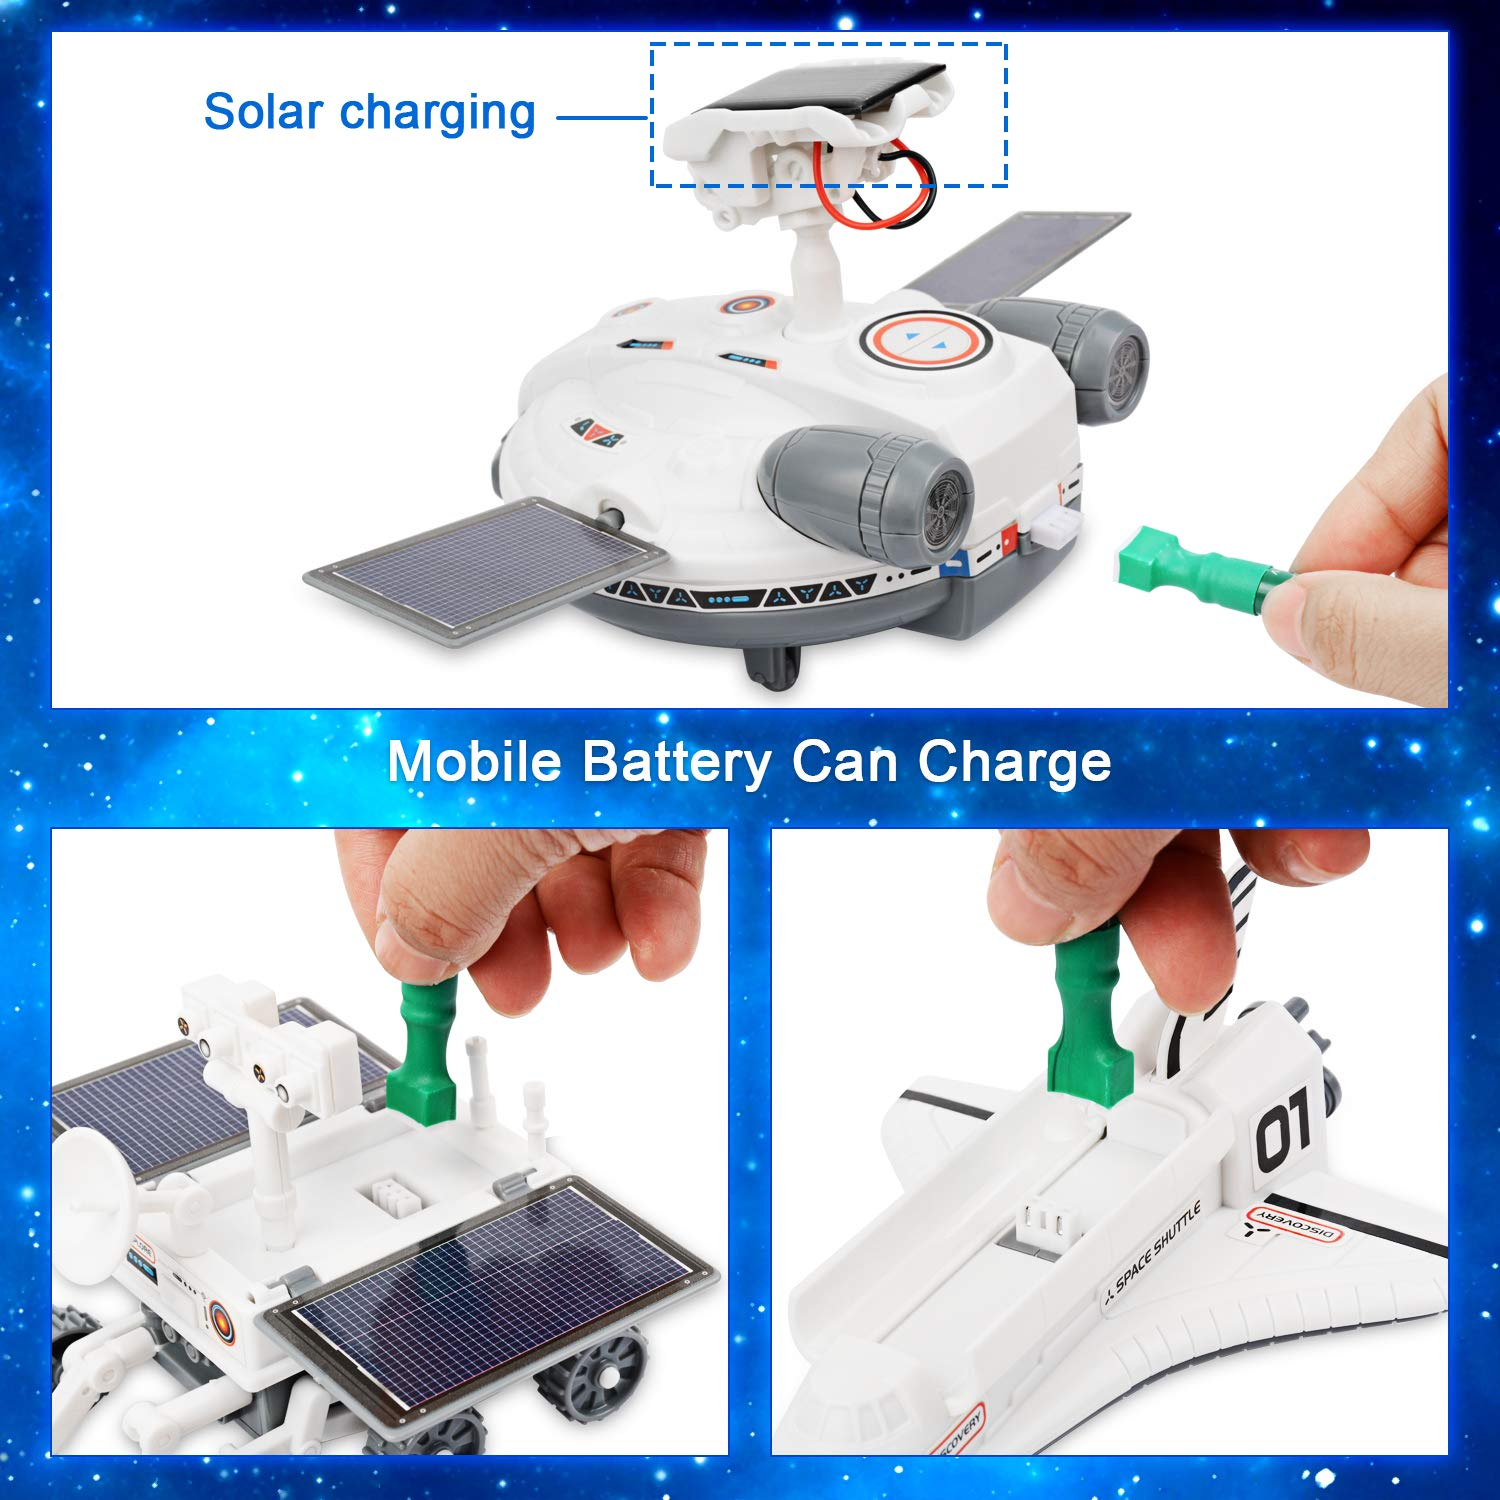 Sillbird STEM 4-in-1 Solar Science Robot kit for Kids Educational Space Moon Exploration Fleet Building Experiment Toys kit for Boys and Girls Age of 8 Years